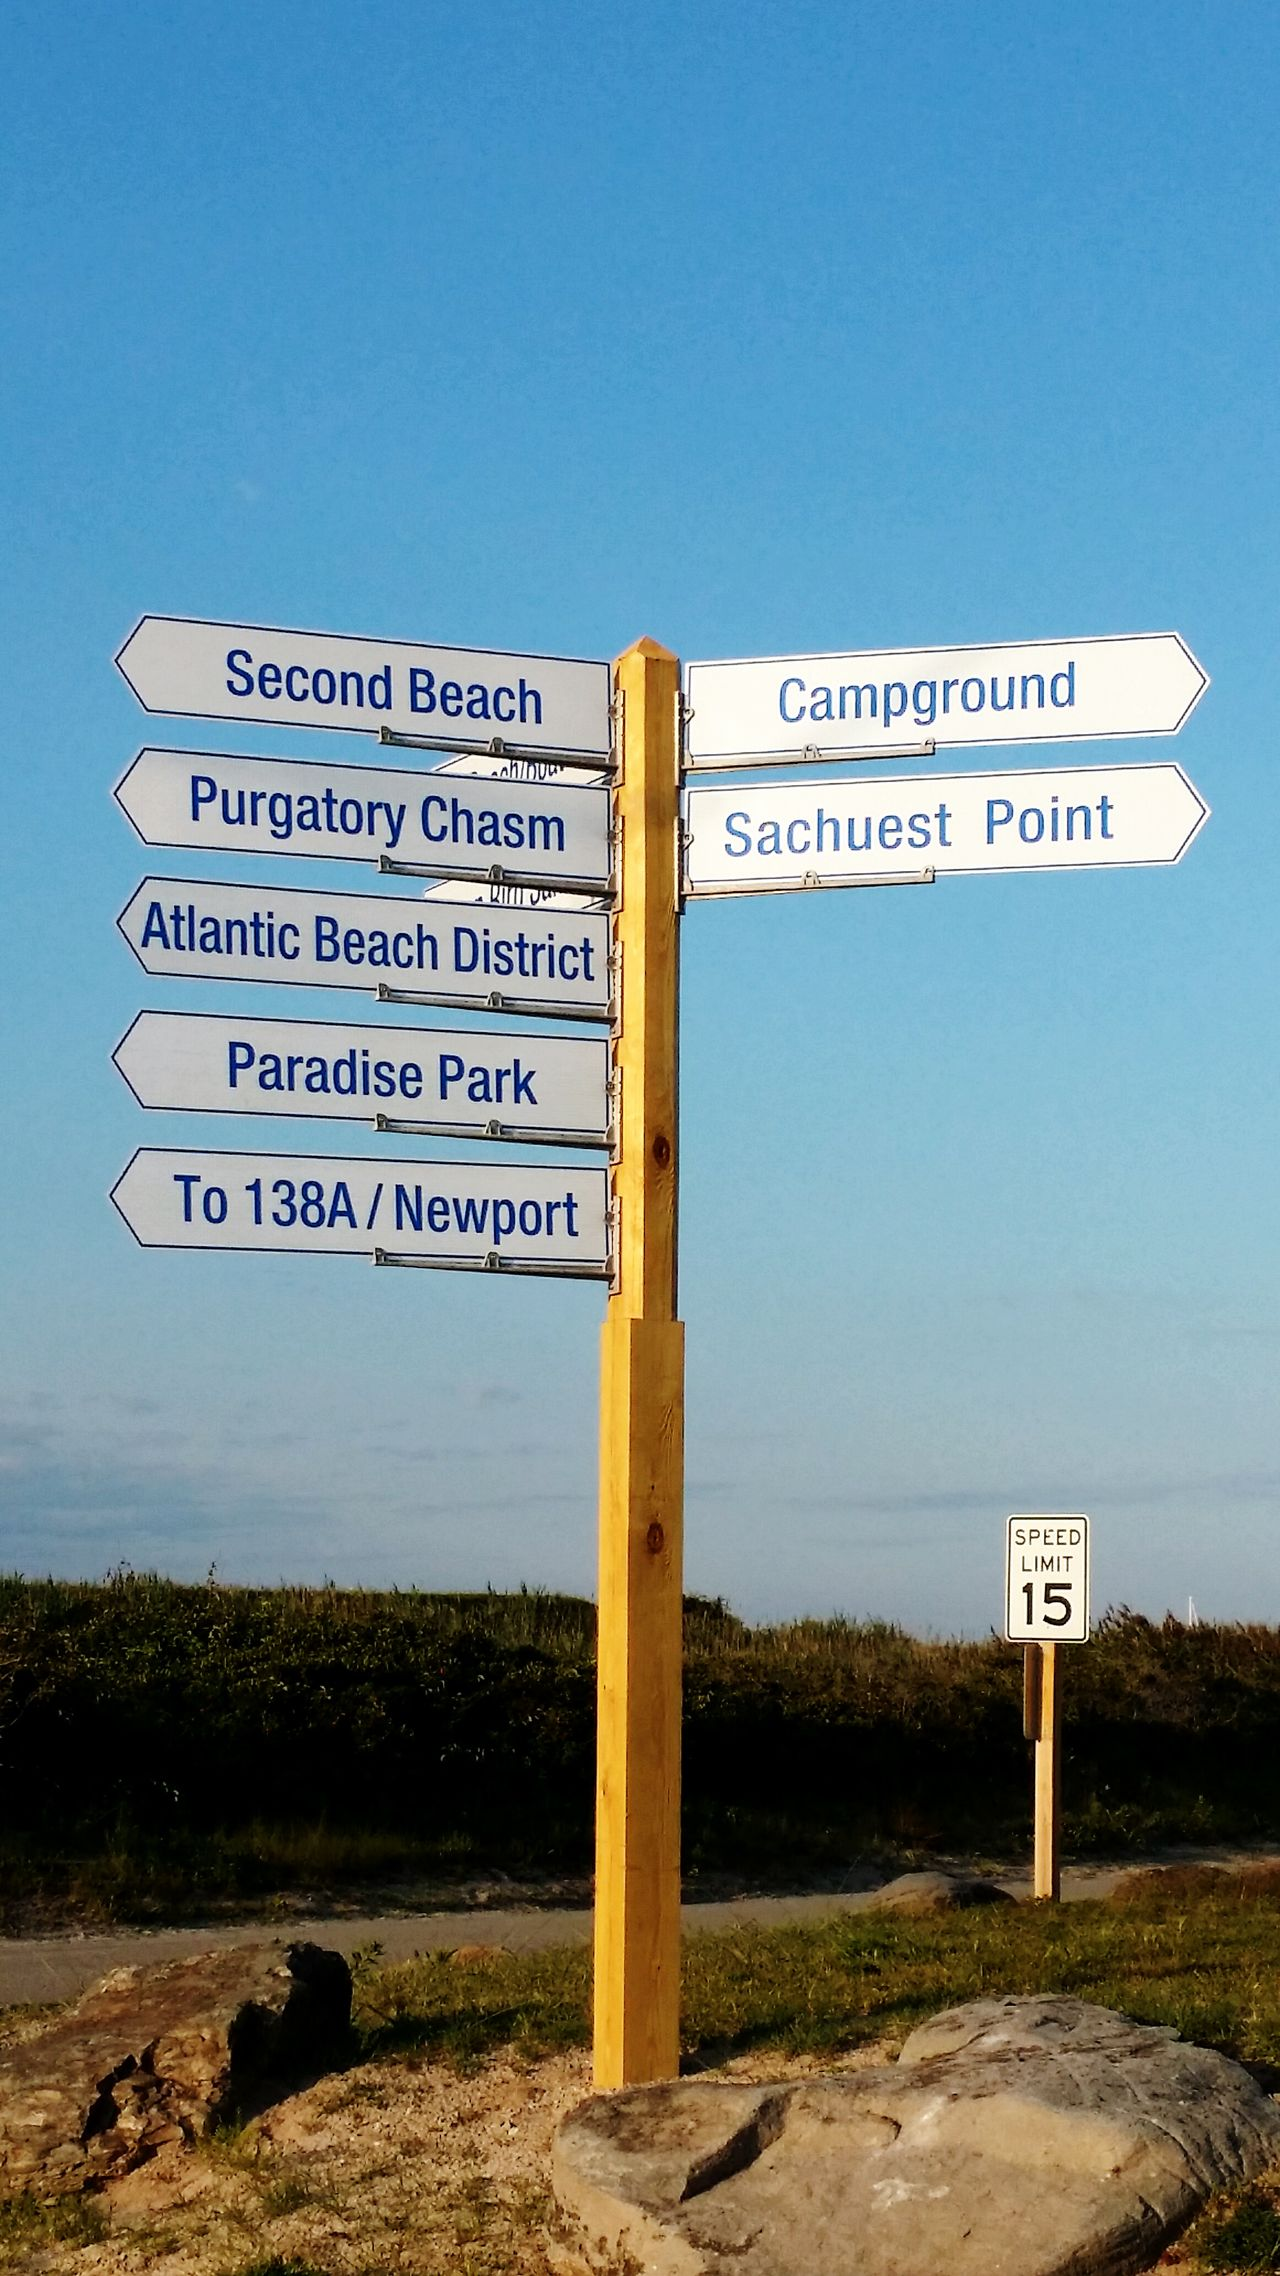 Second Beach Signs_collection Signs Directions So many choices... On The Road Practicing Photography Sunny Day Road Signs Enjoying Life From My Point Of View